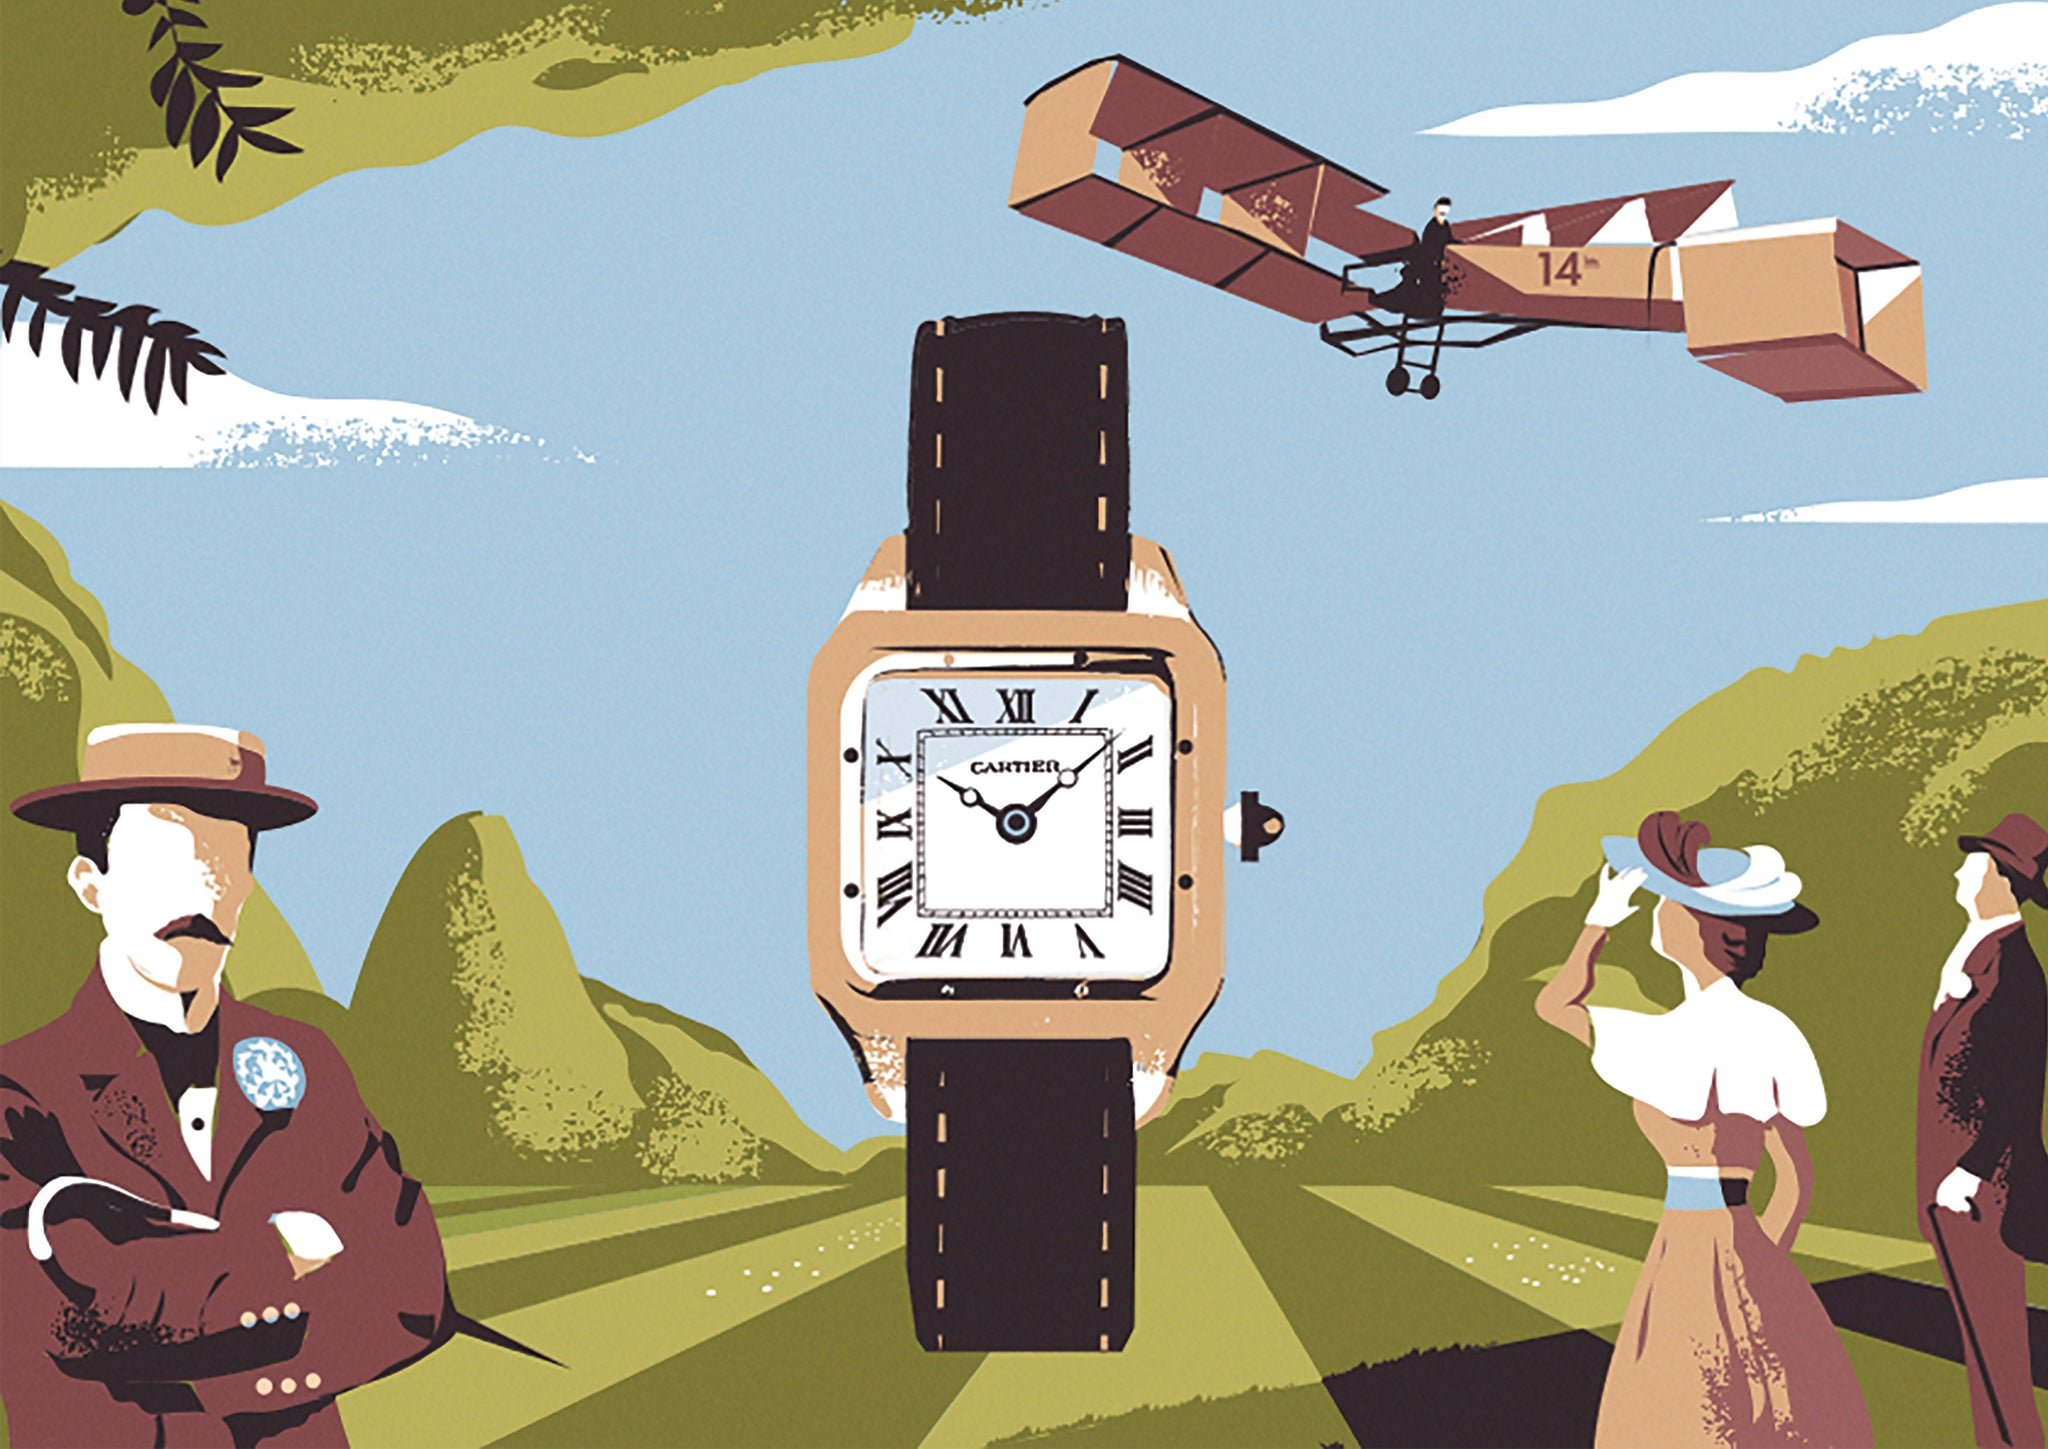 Prints Harry Illustration Alberto Santos-Dumont Cartier watch and plane